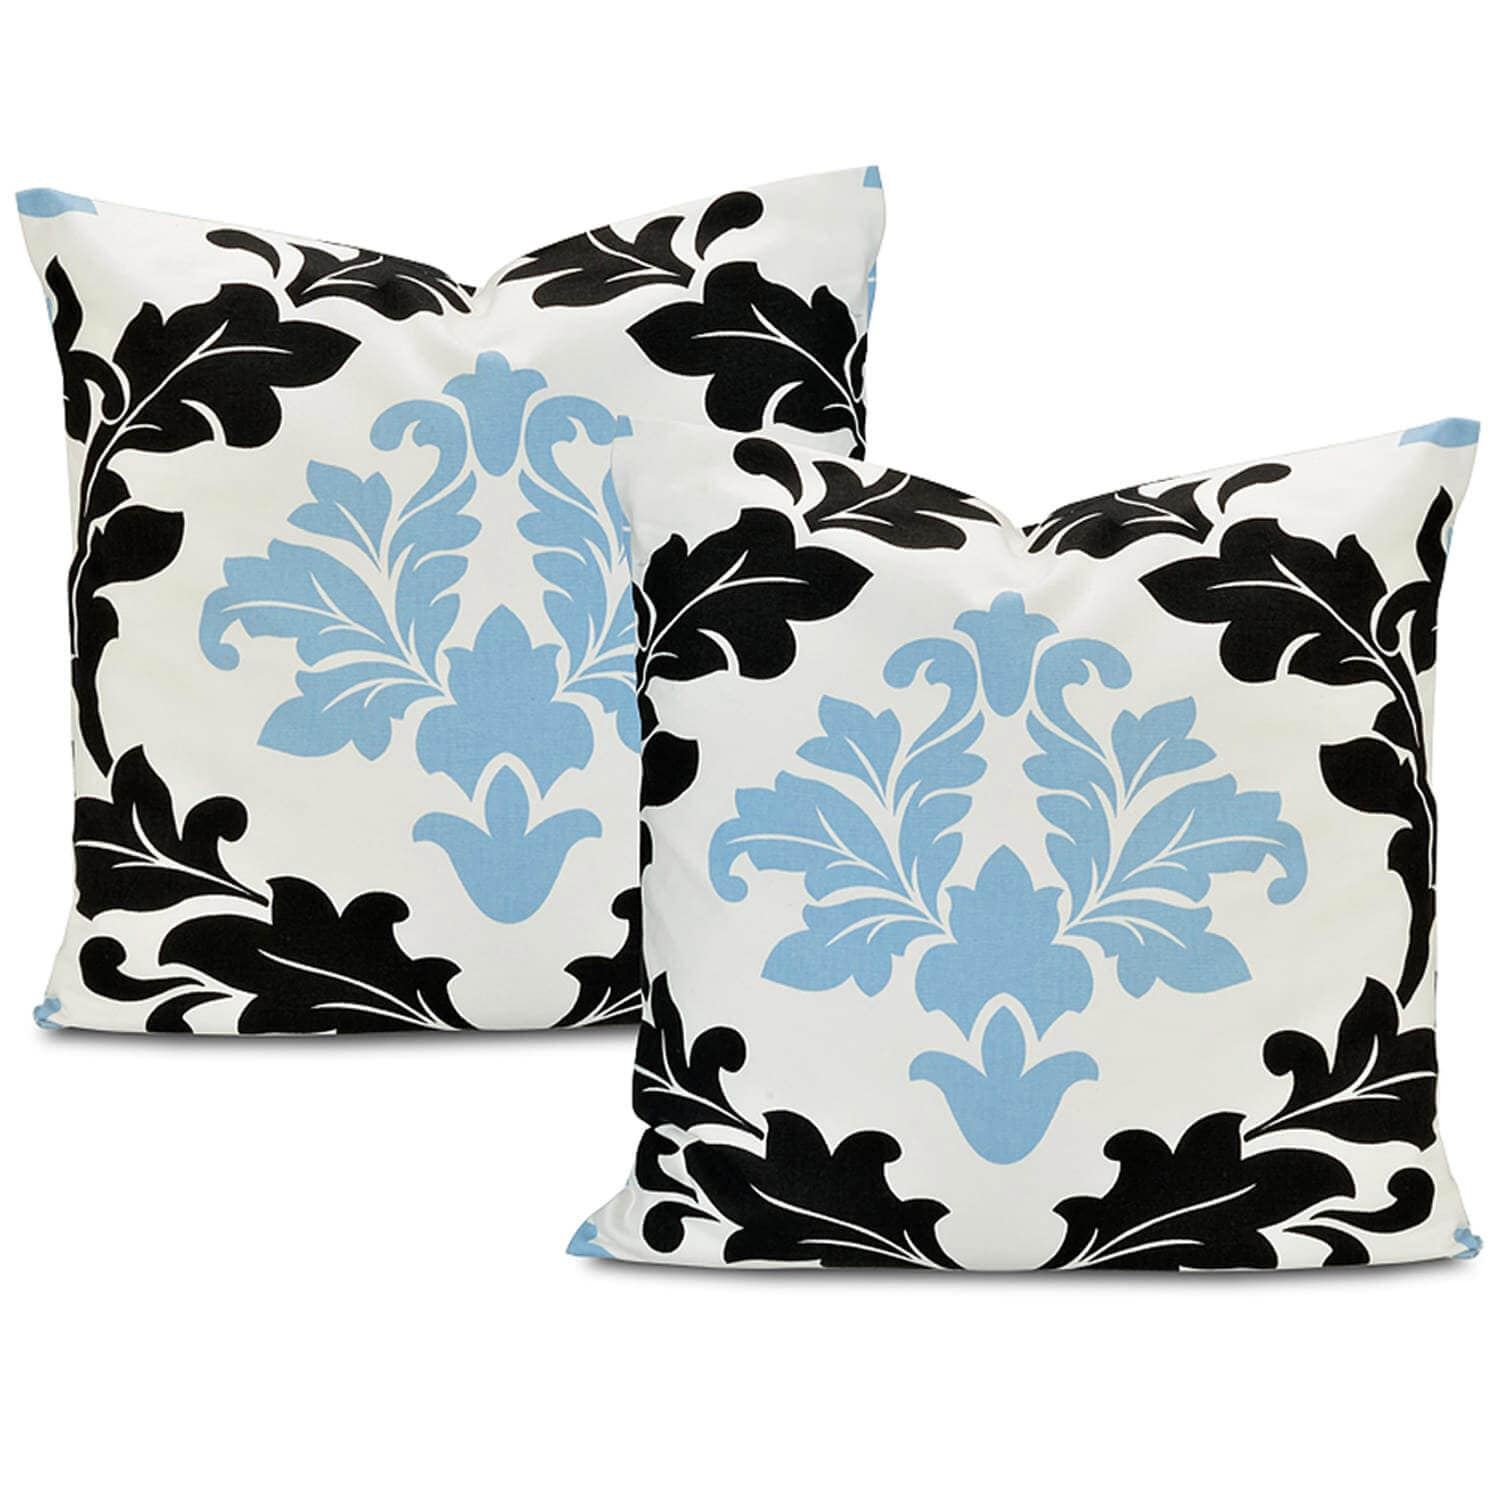 Deauville Printed Cotton Cushion Covers - Pair